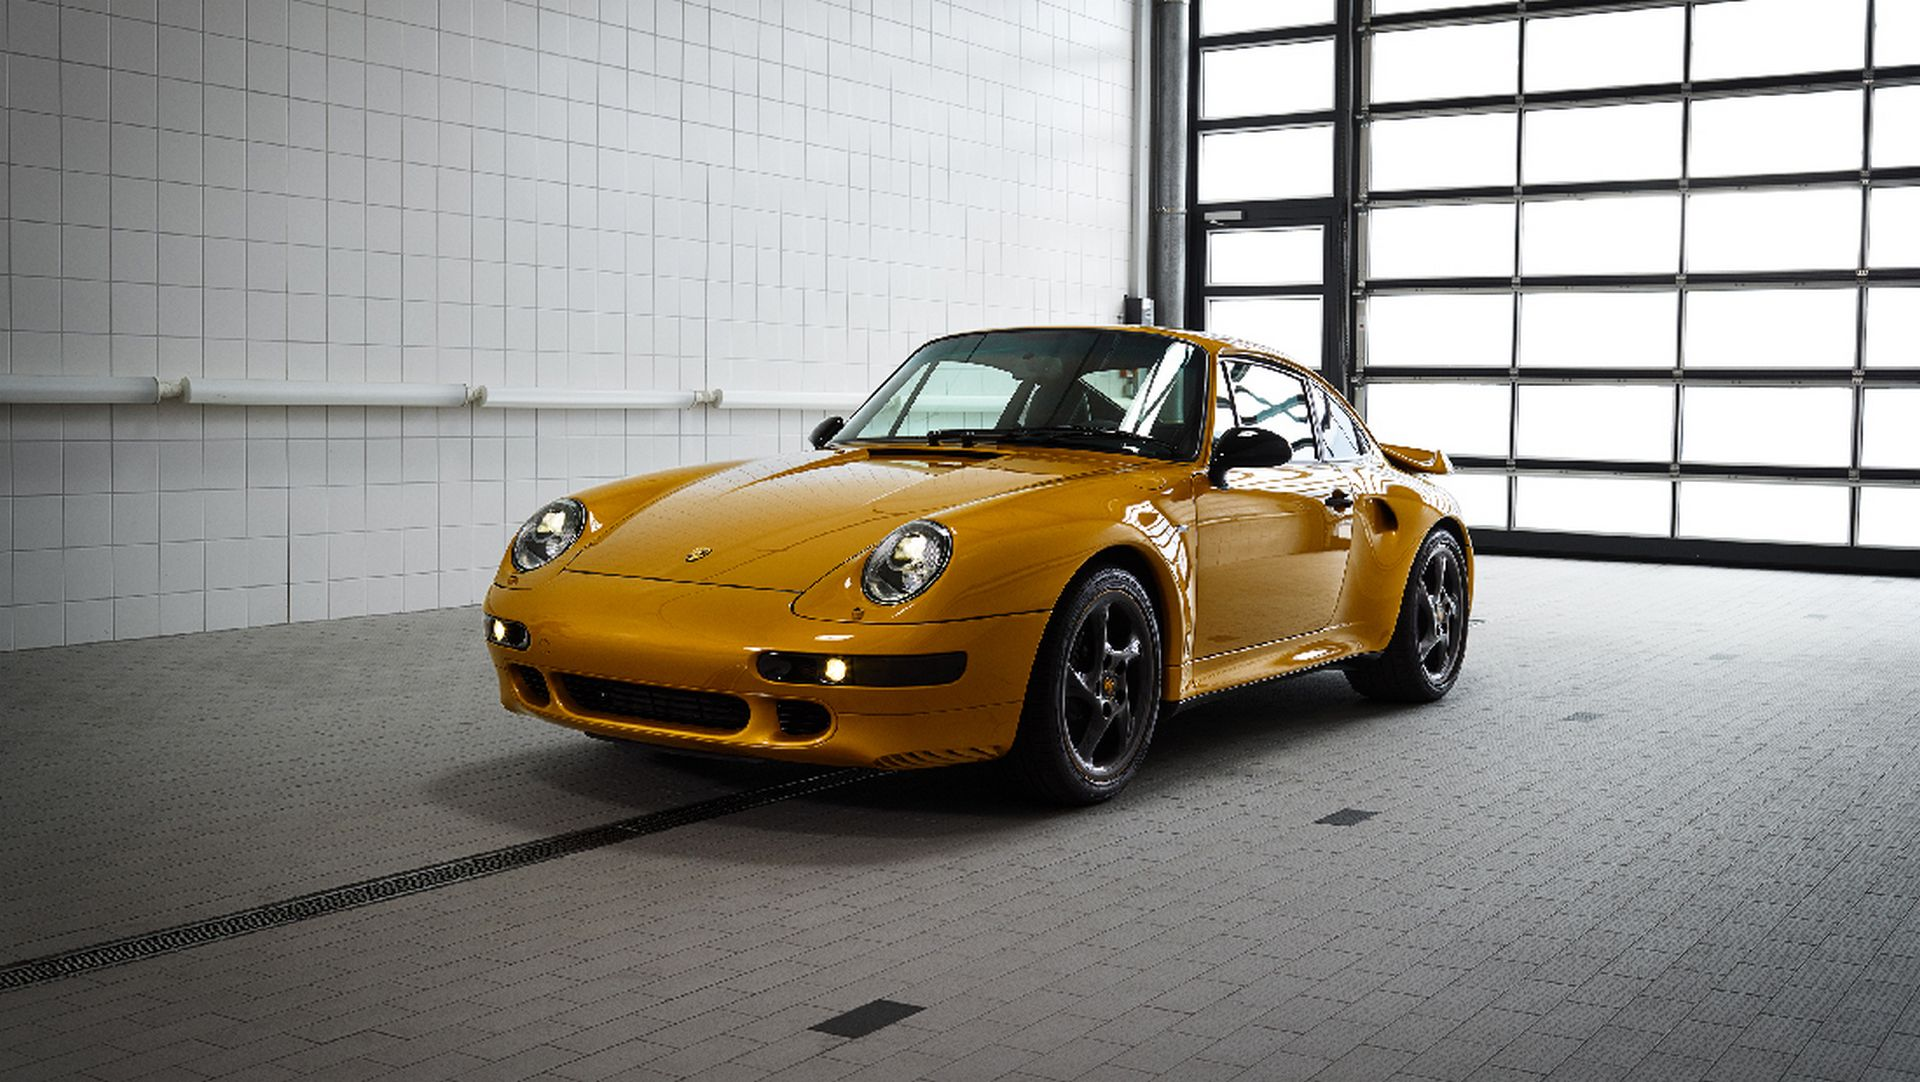 78f164ca-porsche-993-turbo-project-gold-5.jpg